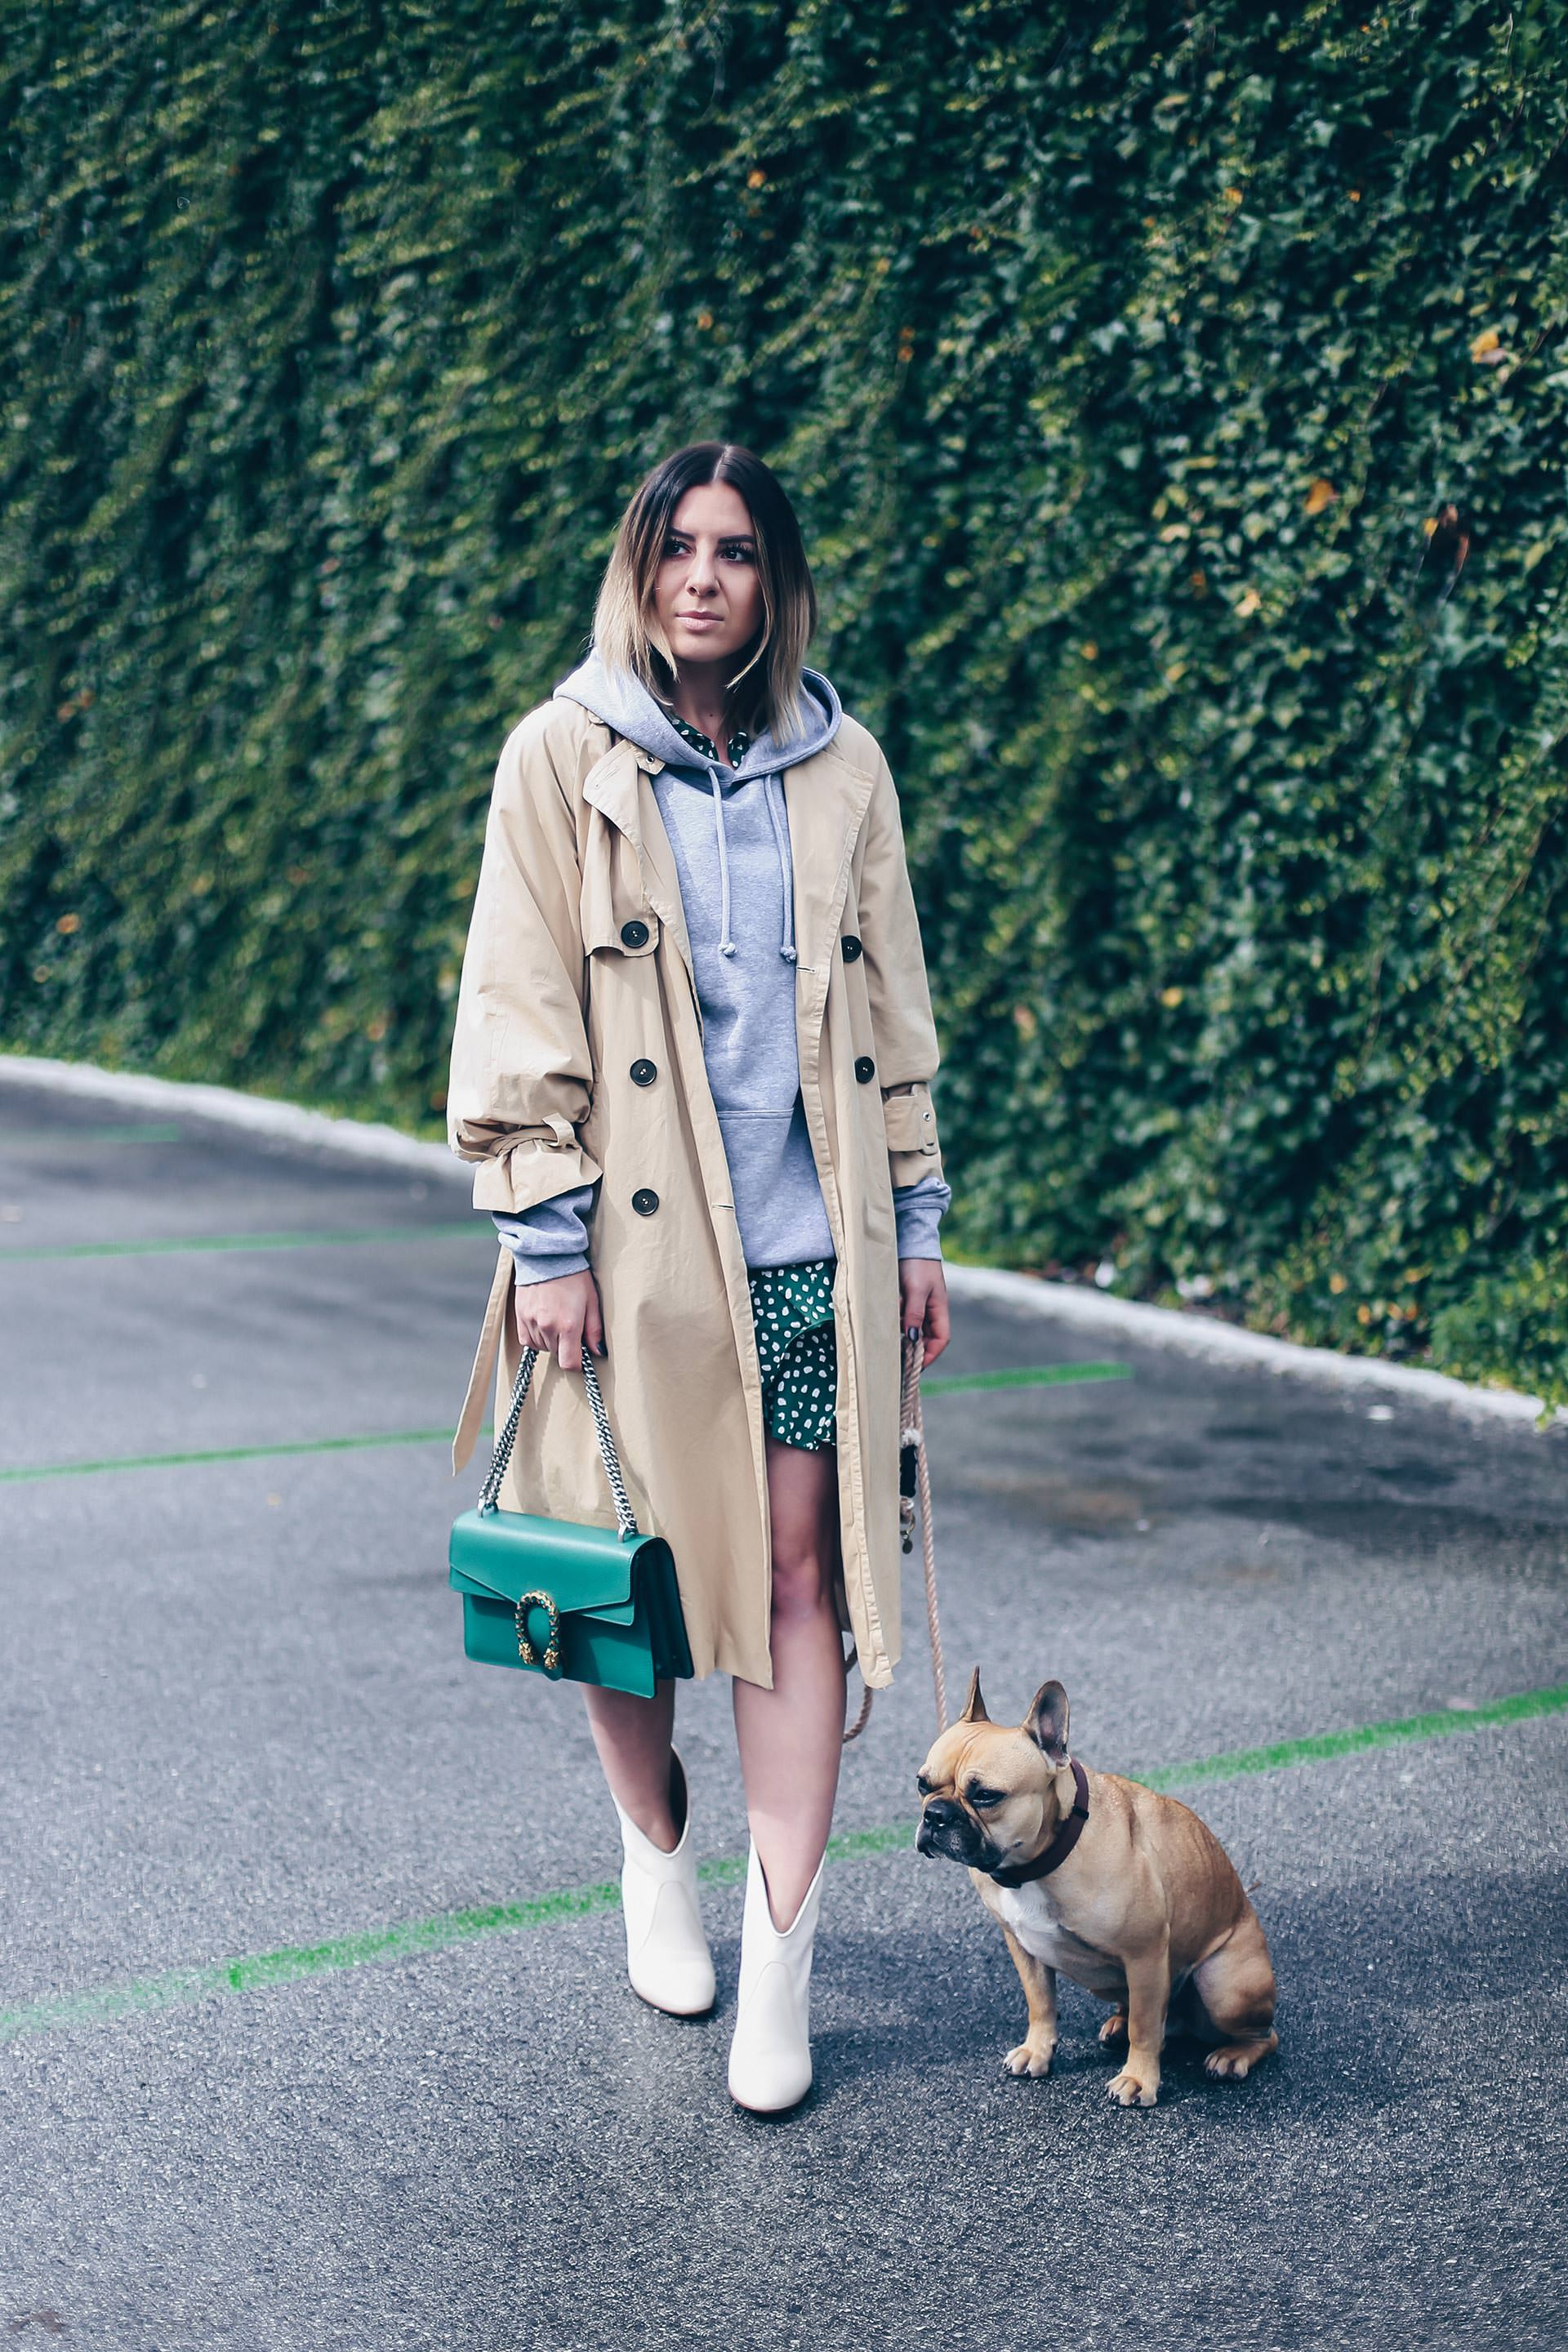 Herbst Outfit mit Wickelkleid und grauem Hoodie, beige Stiefelette kombinieren, Printkleid, Trenchcoat Outfit, Modeblog, Fashion Blogger, Outfit Blog, Outfit of the Day, Streetstyle Innsbruck, www.whoismocca.com